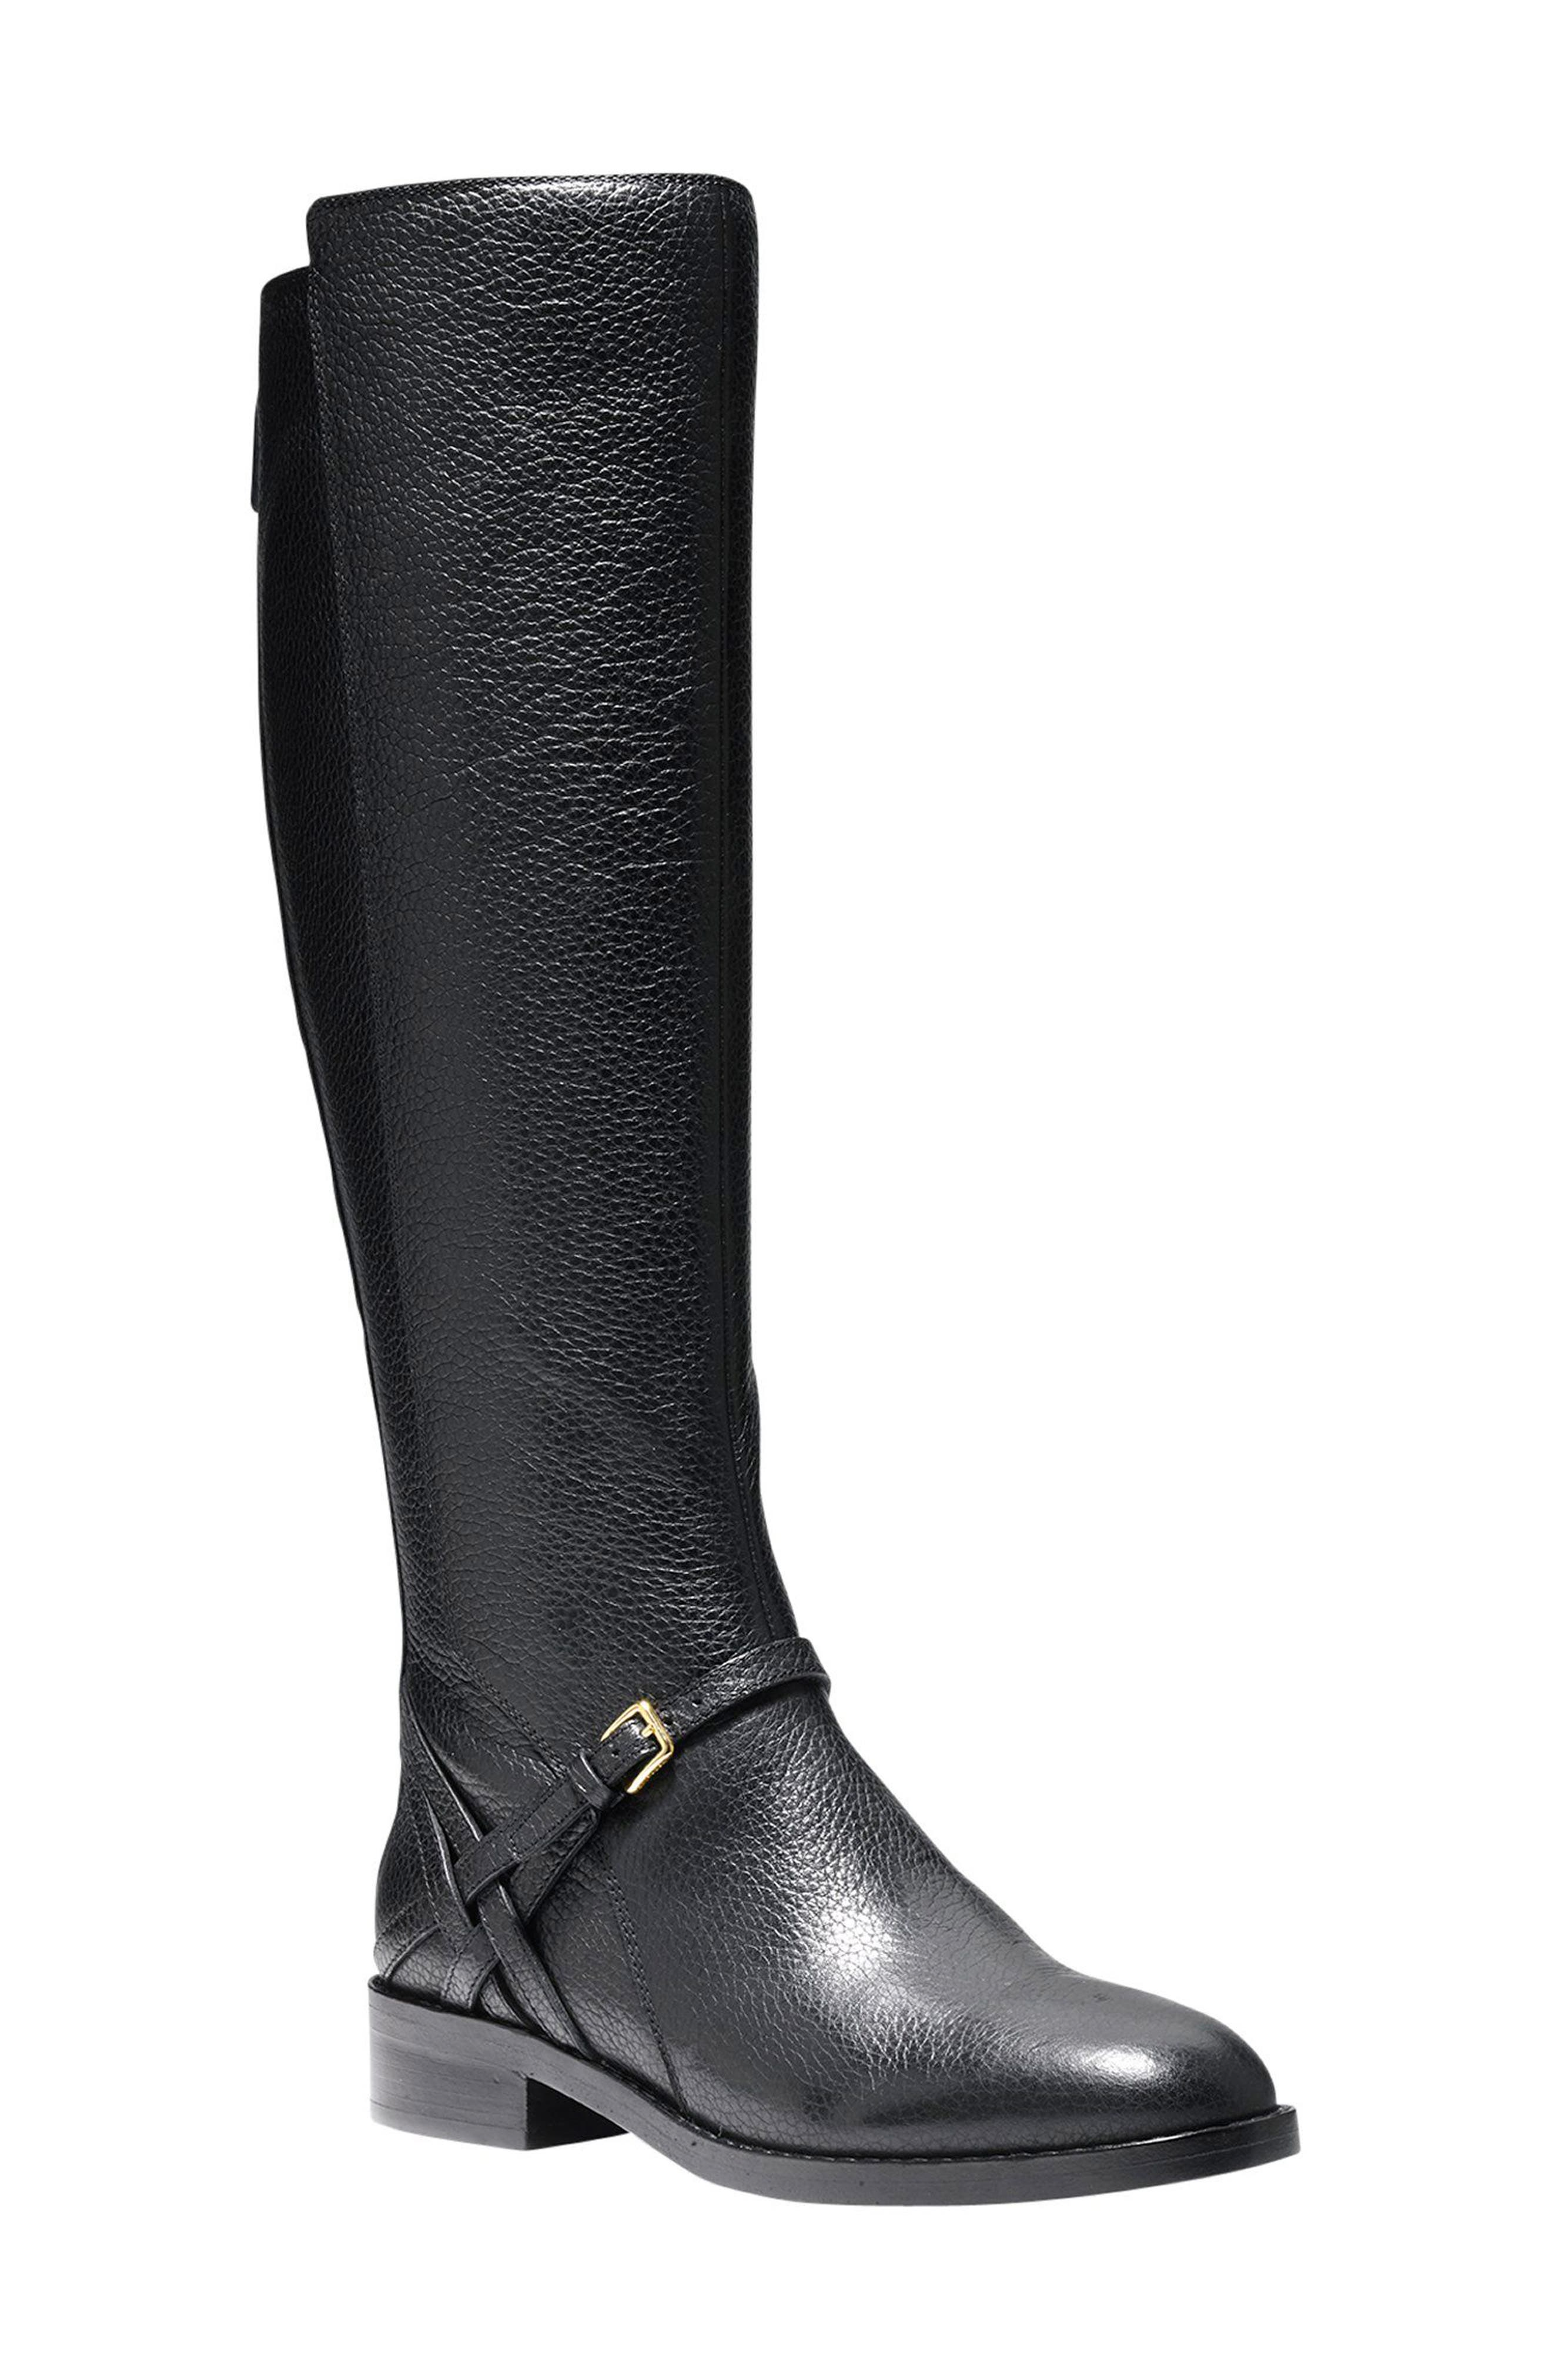 Main Image - Cole Haan Pearlie Tall Boot (Women)